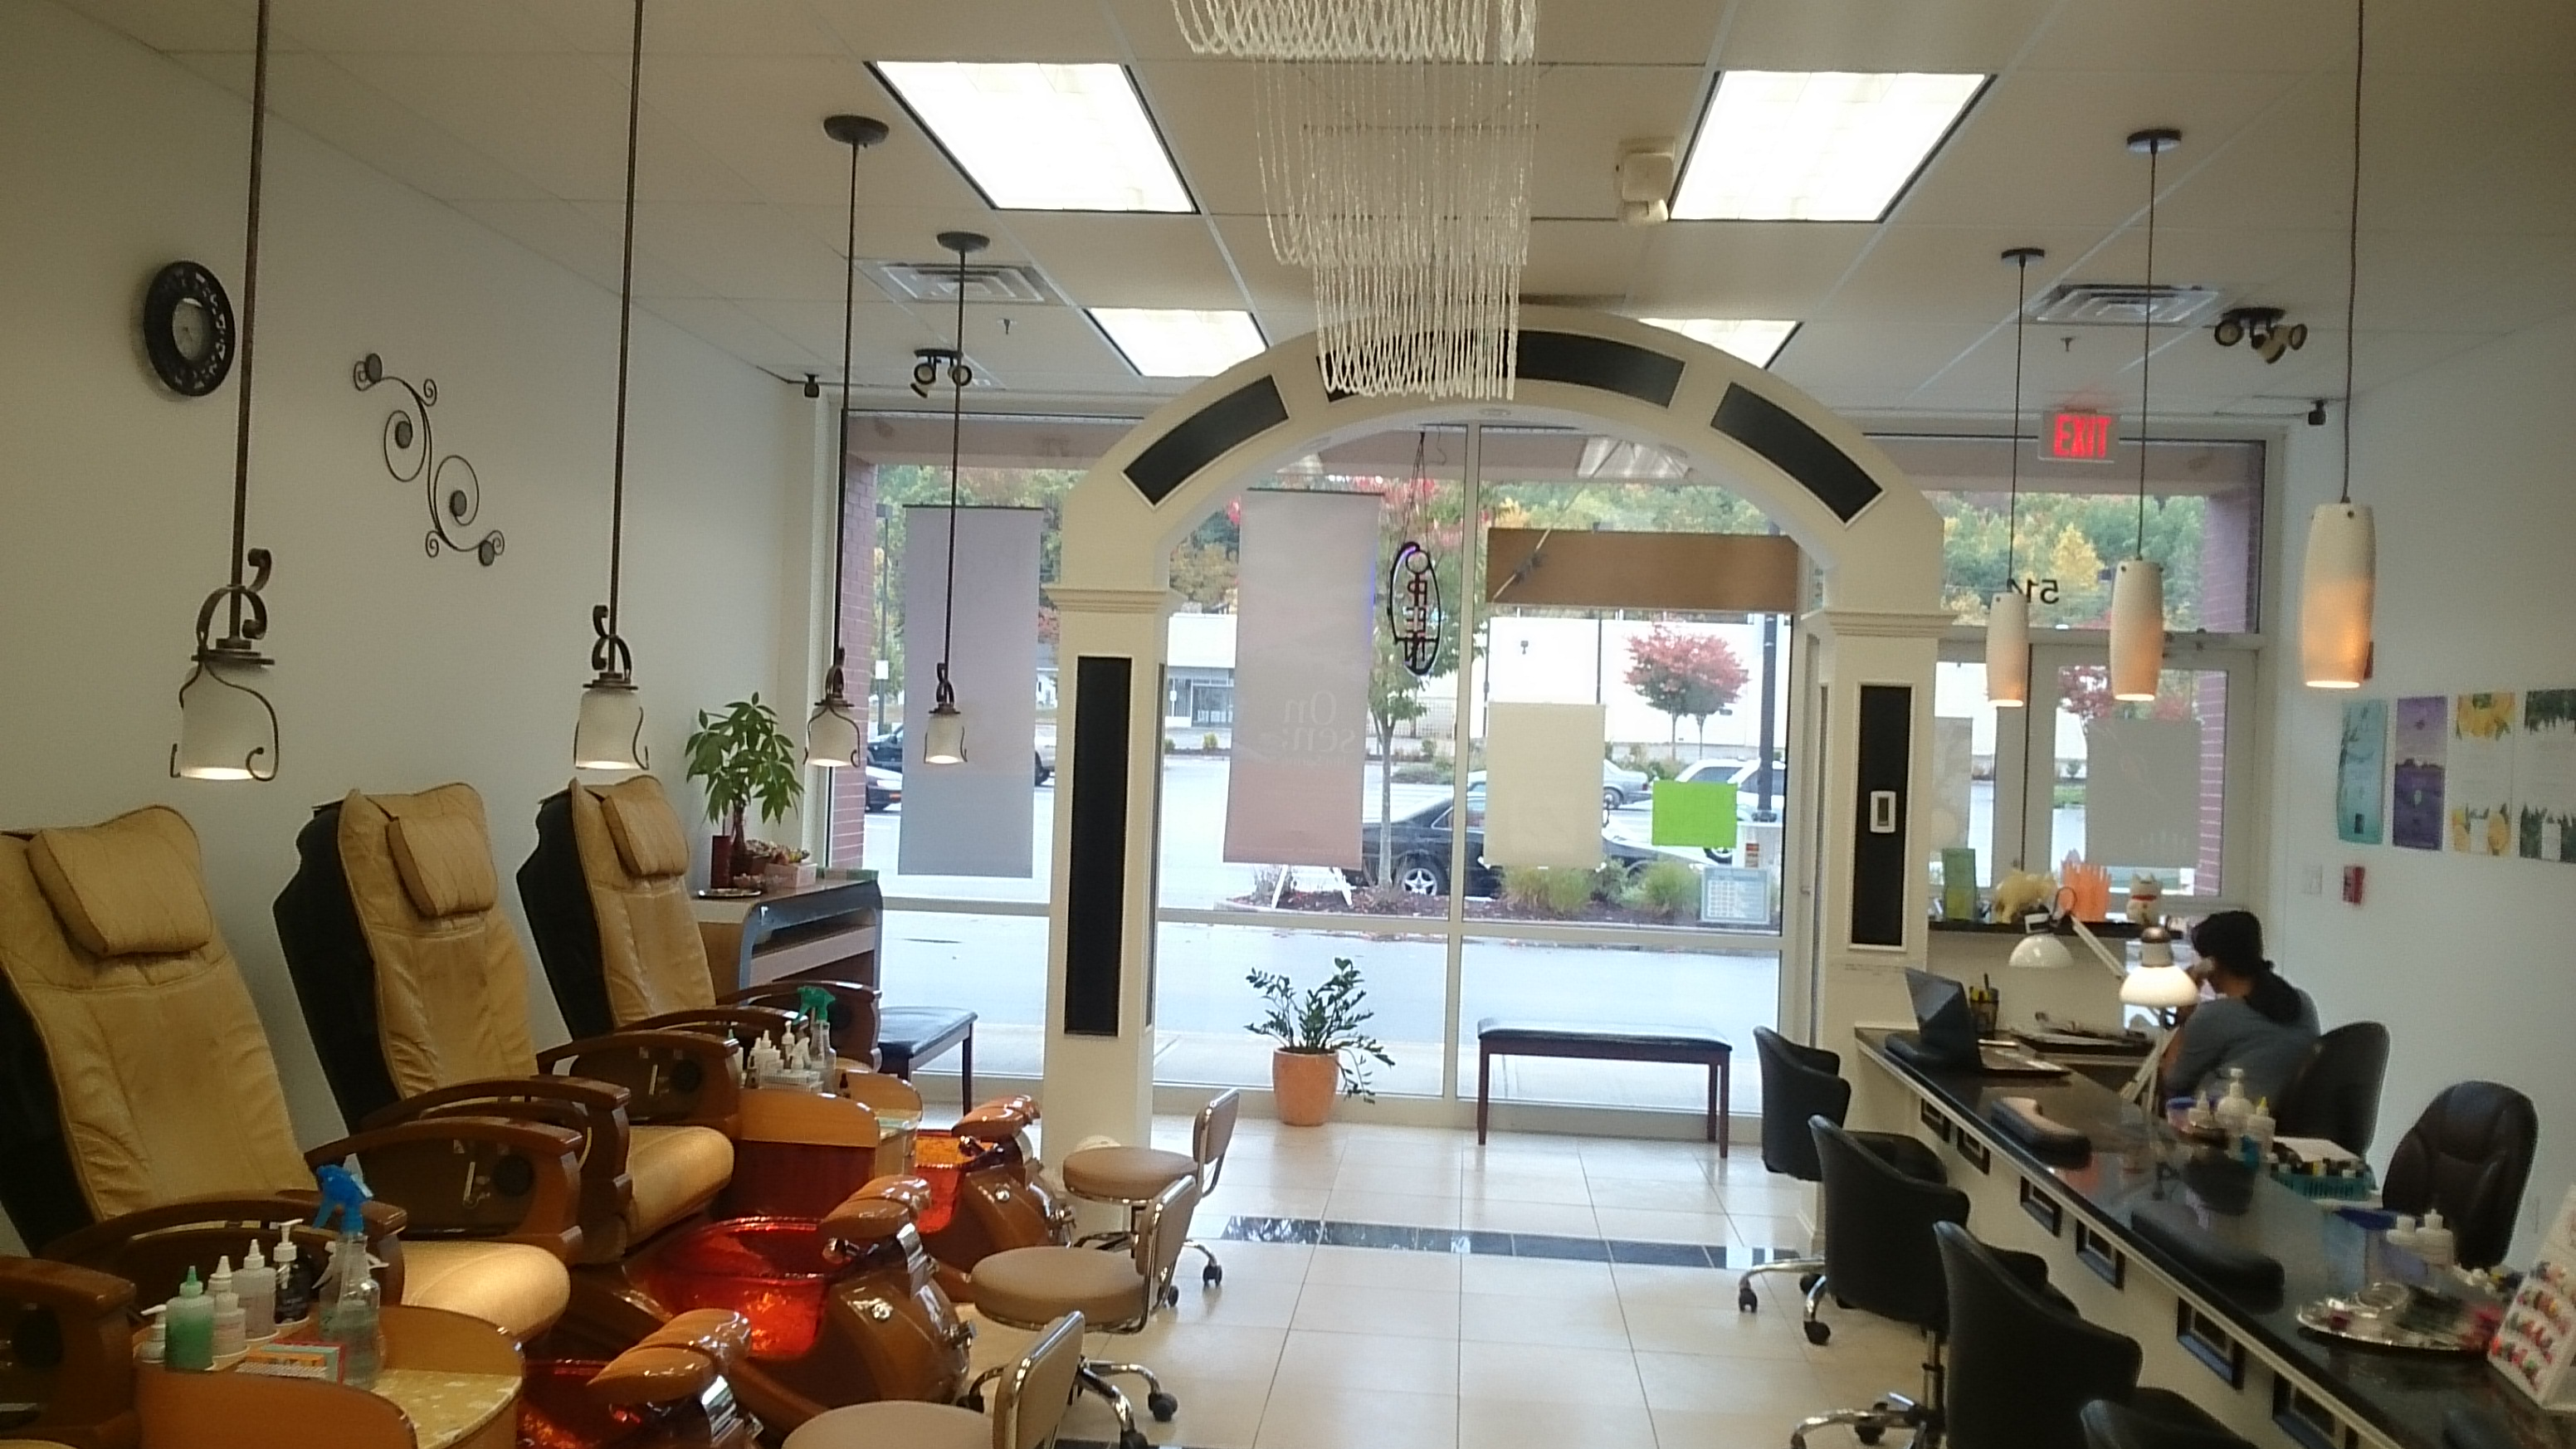 Lotus Nails and Spa 514 Winsted Rd, Torrington, CT 06790 - YP.com